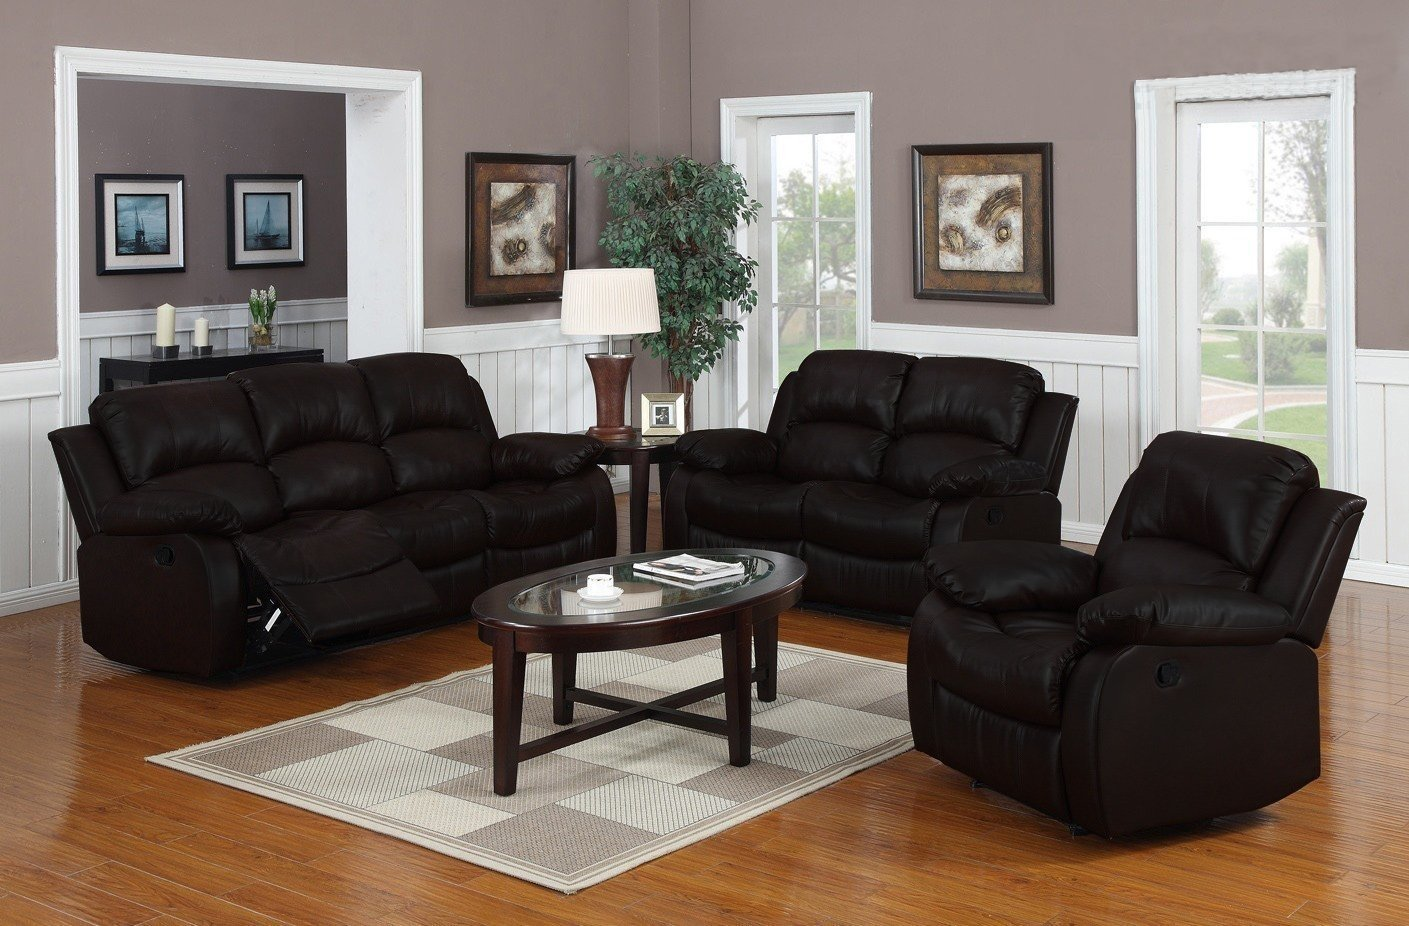 Traditional 3 Pc Reclining Sofa Set Real Grain Leather Double